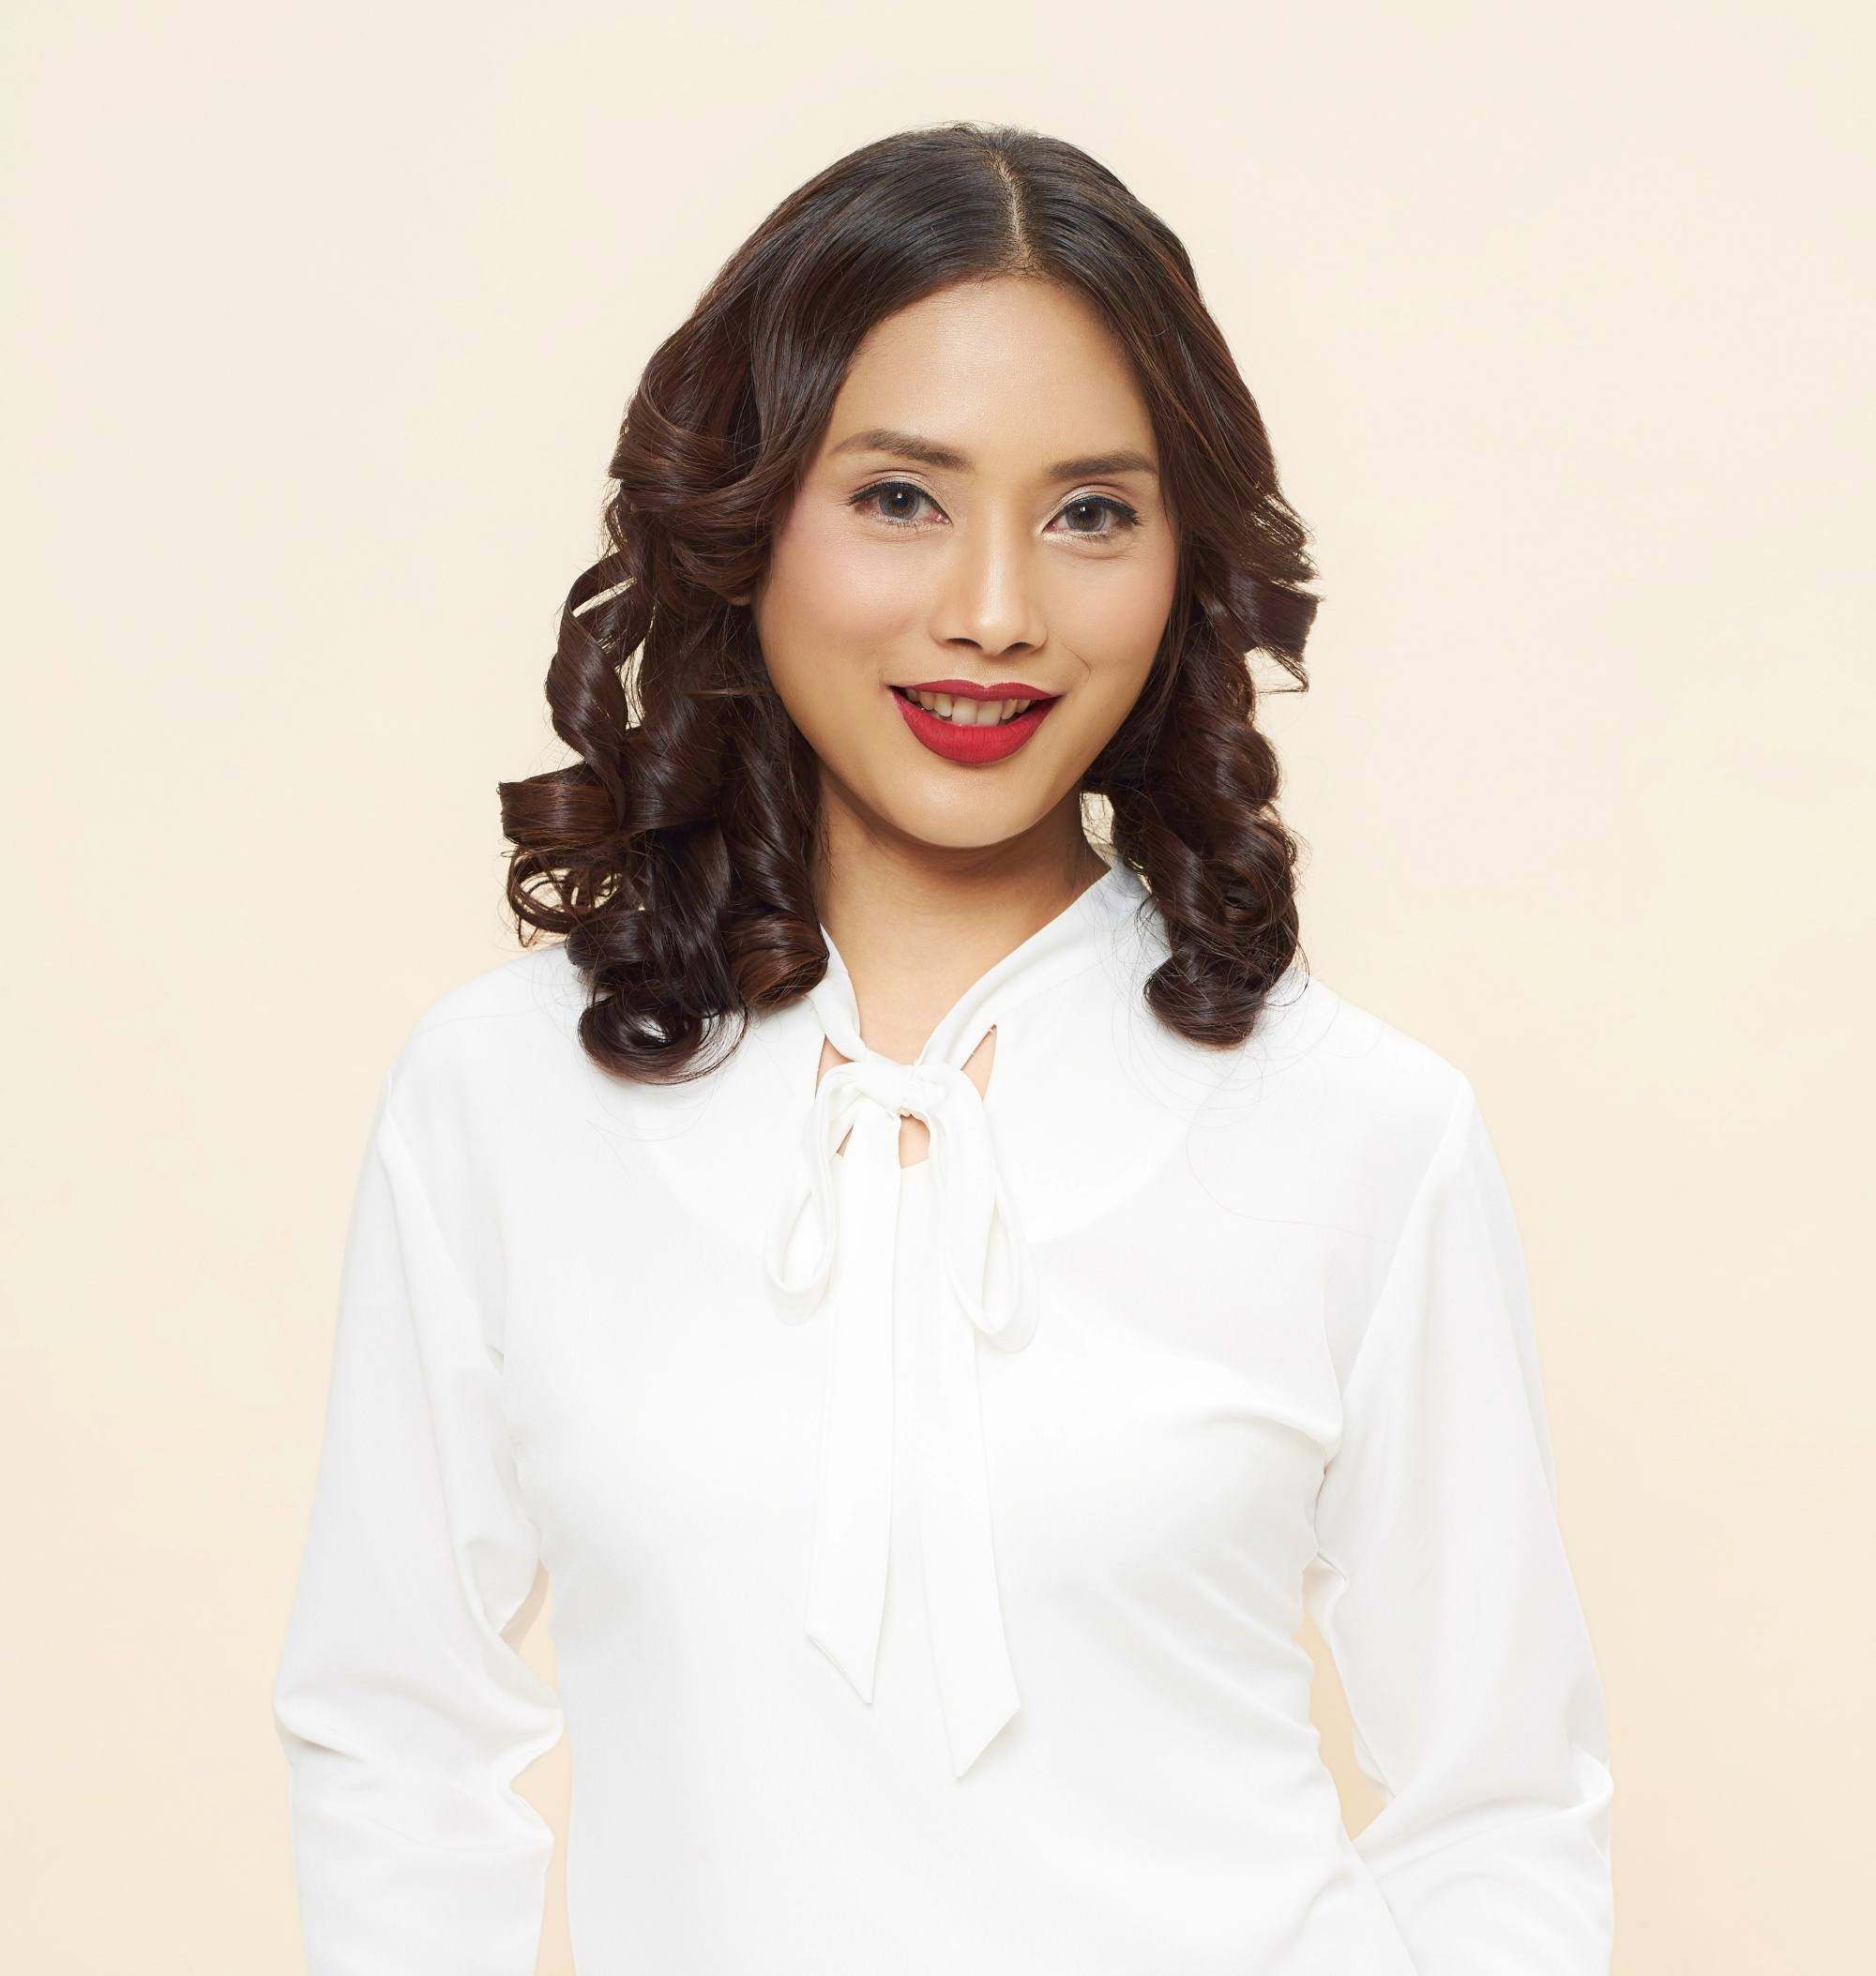 Party hairstyles for medium-length hair: Closeup shot of an Asian woman with shoulder-length wavy hair wearing a white blouse